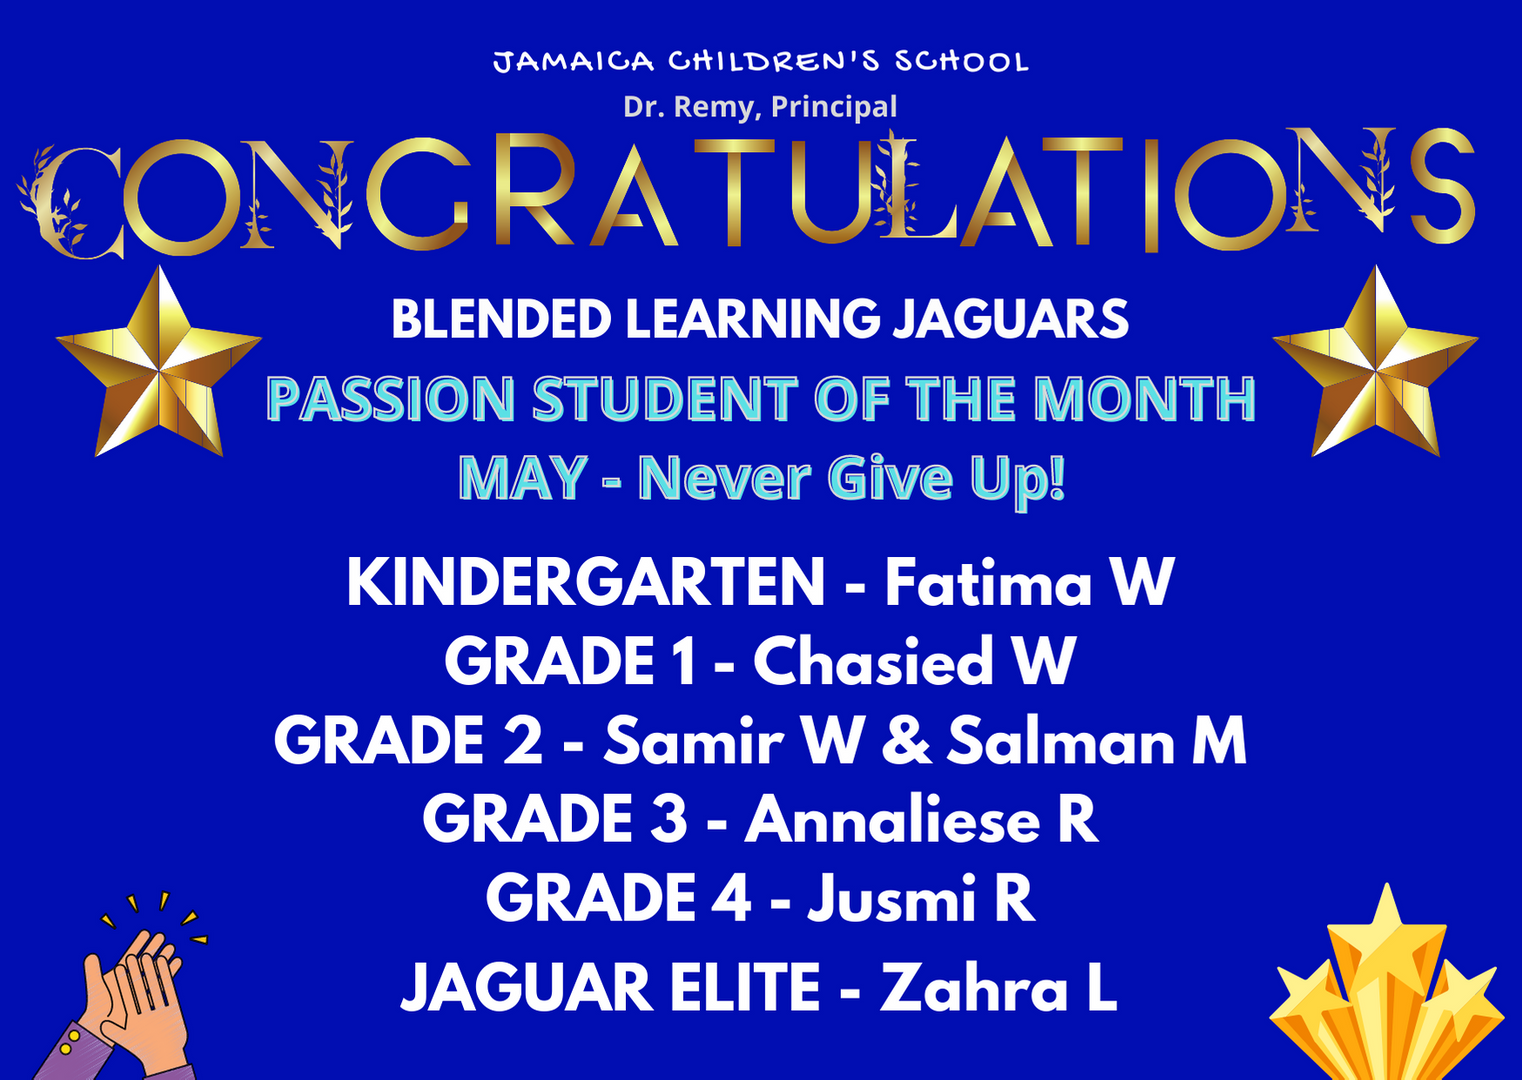 Passion Student of The Month